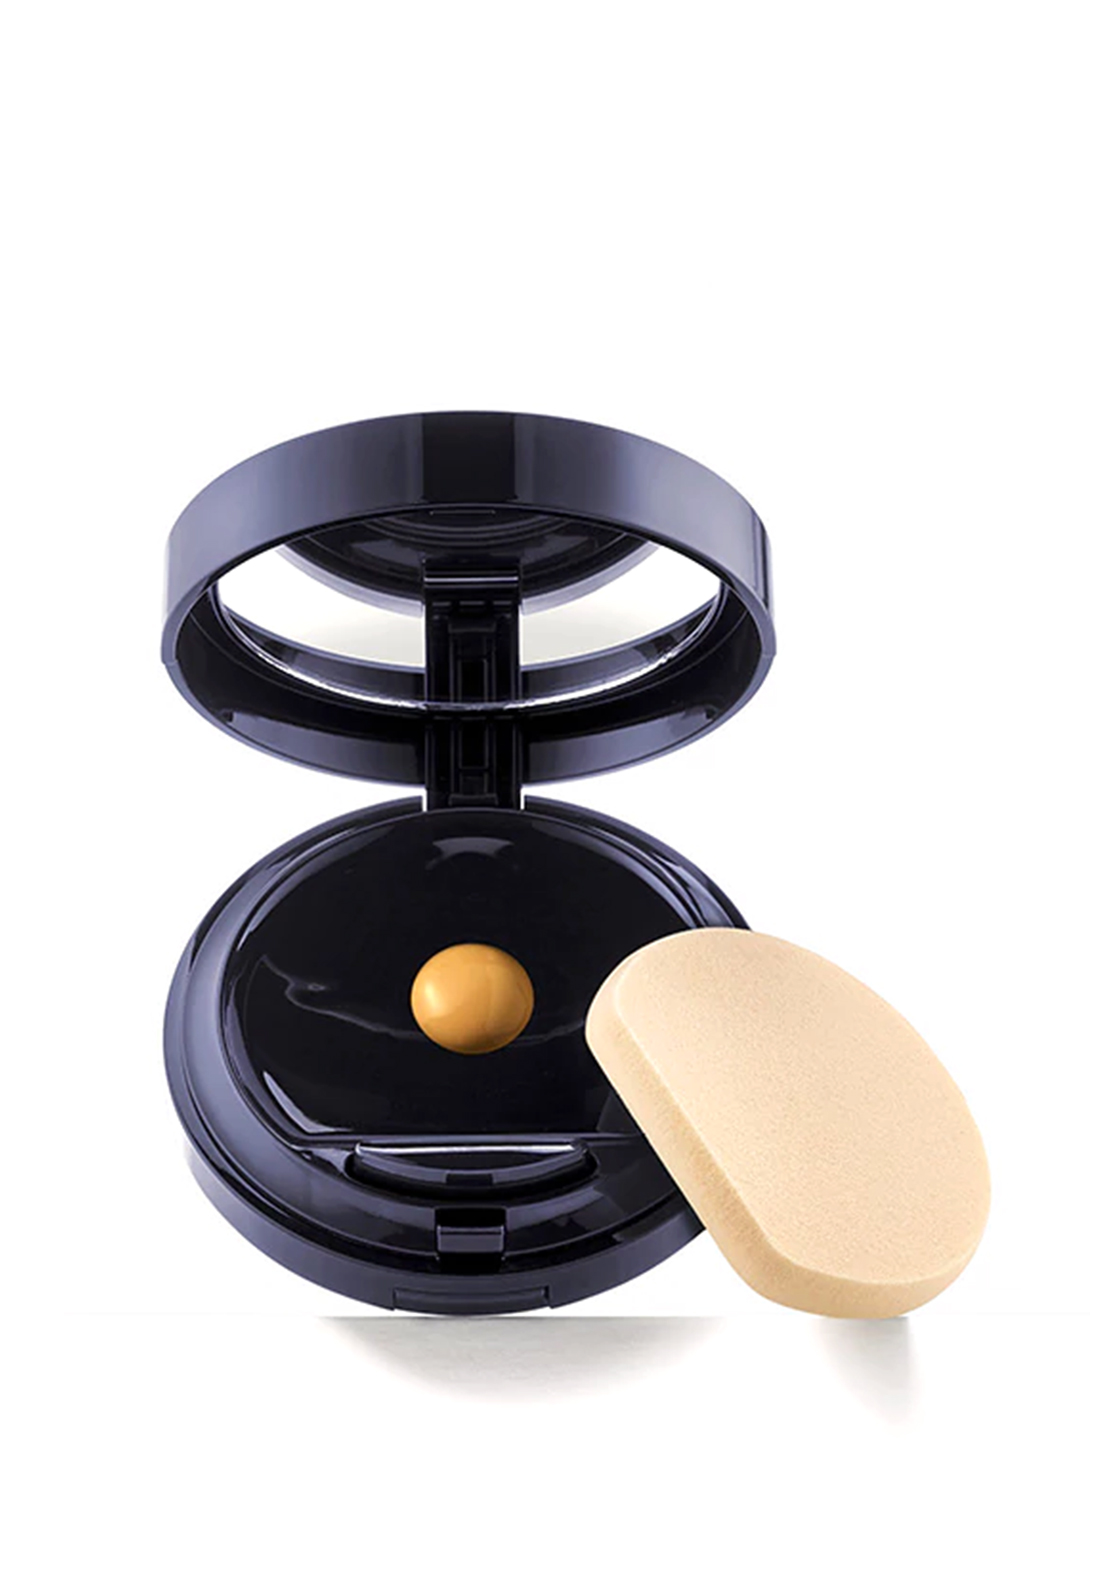 Estee Lauder Double Wear Make Up to Go Liquid Compact, Spiced Sand